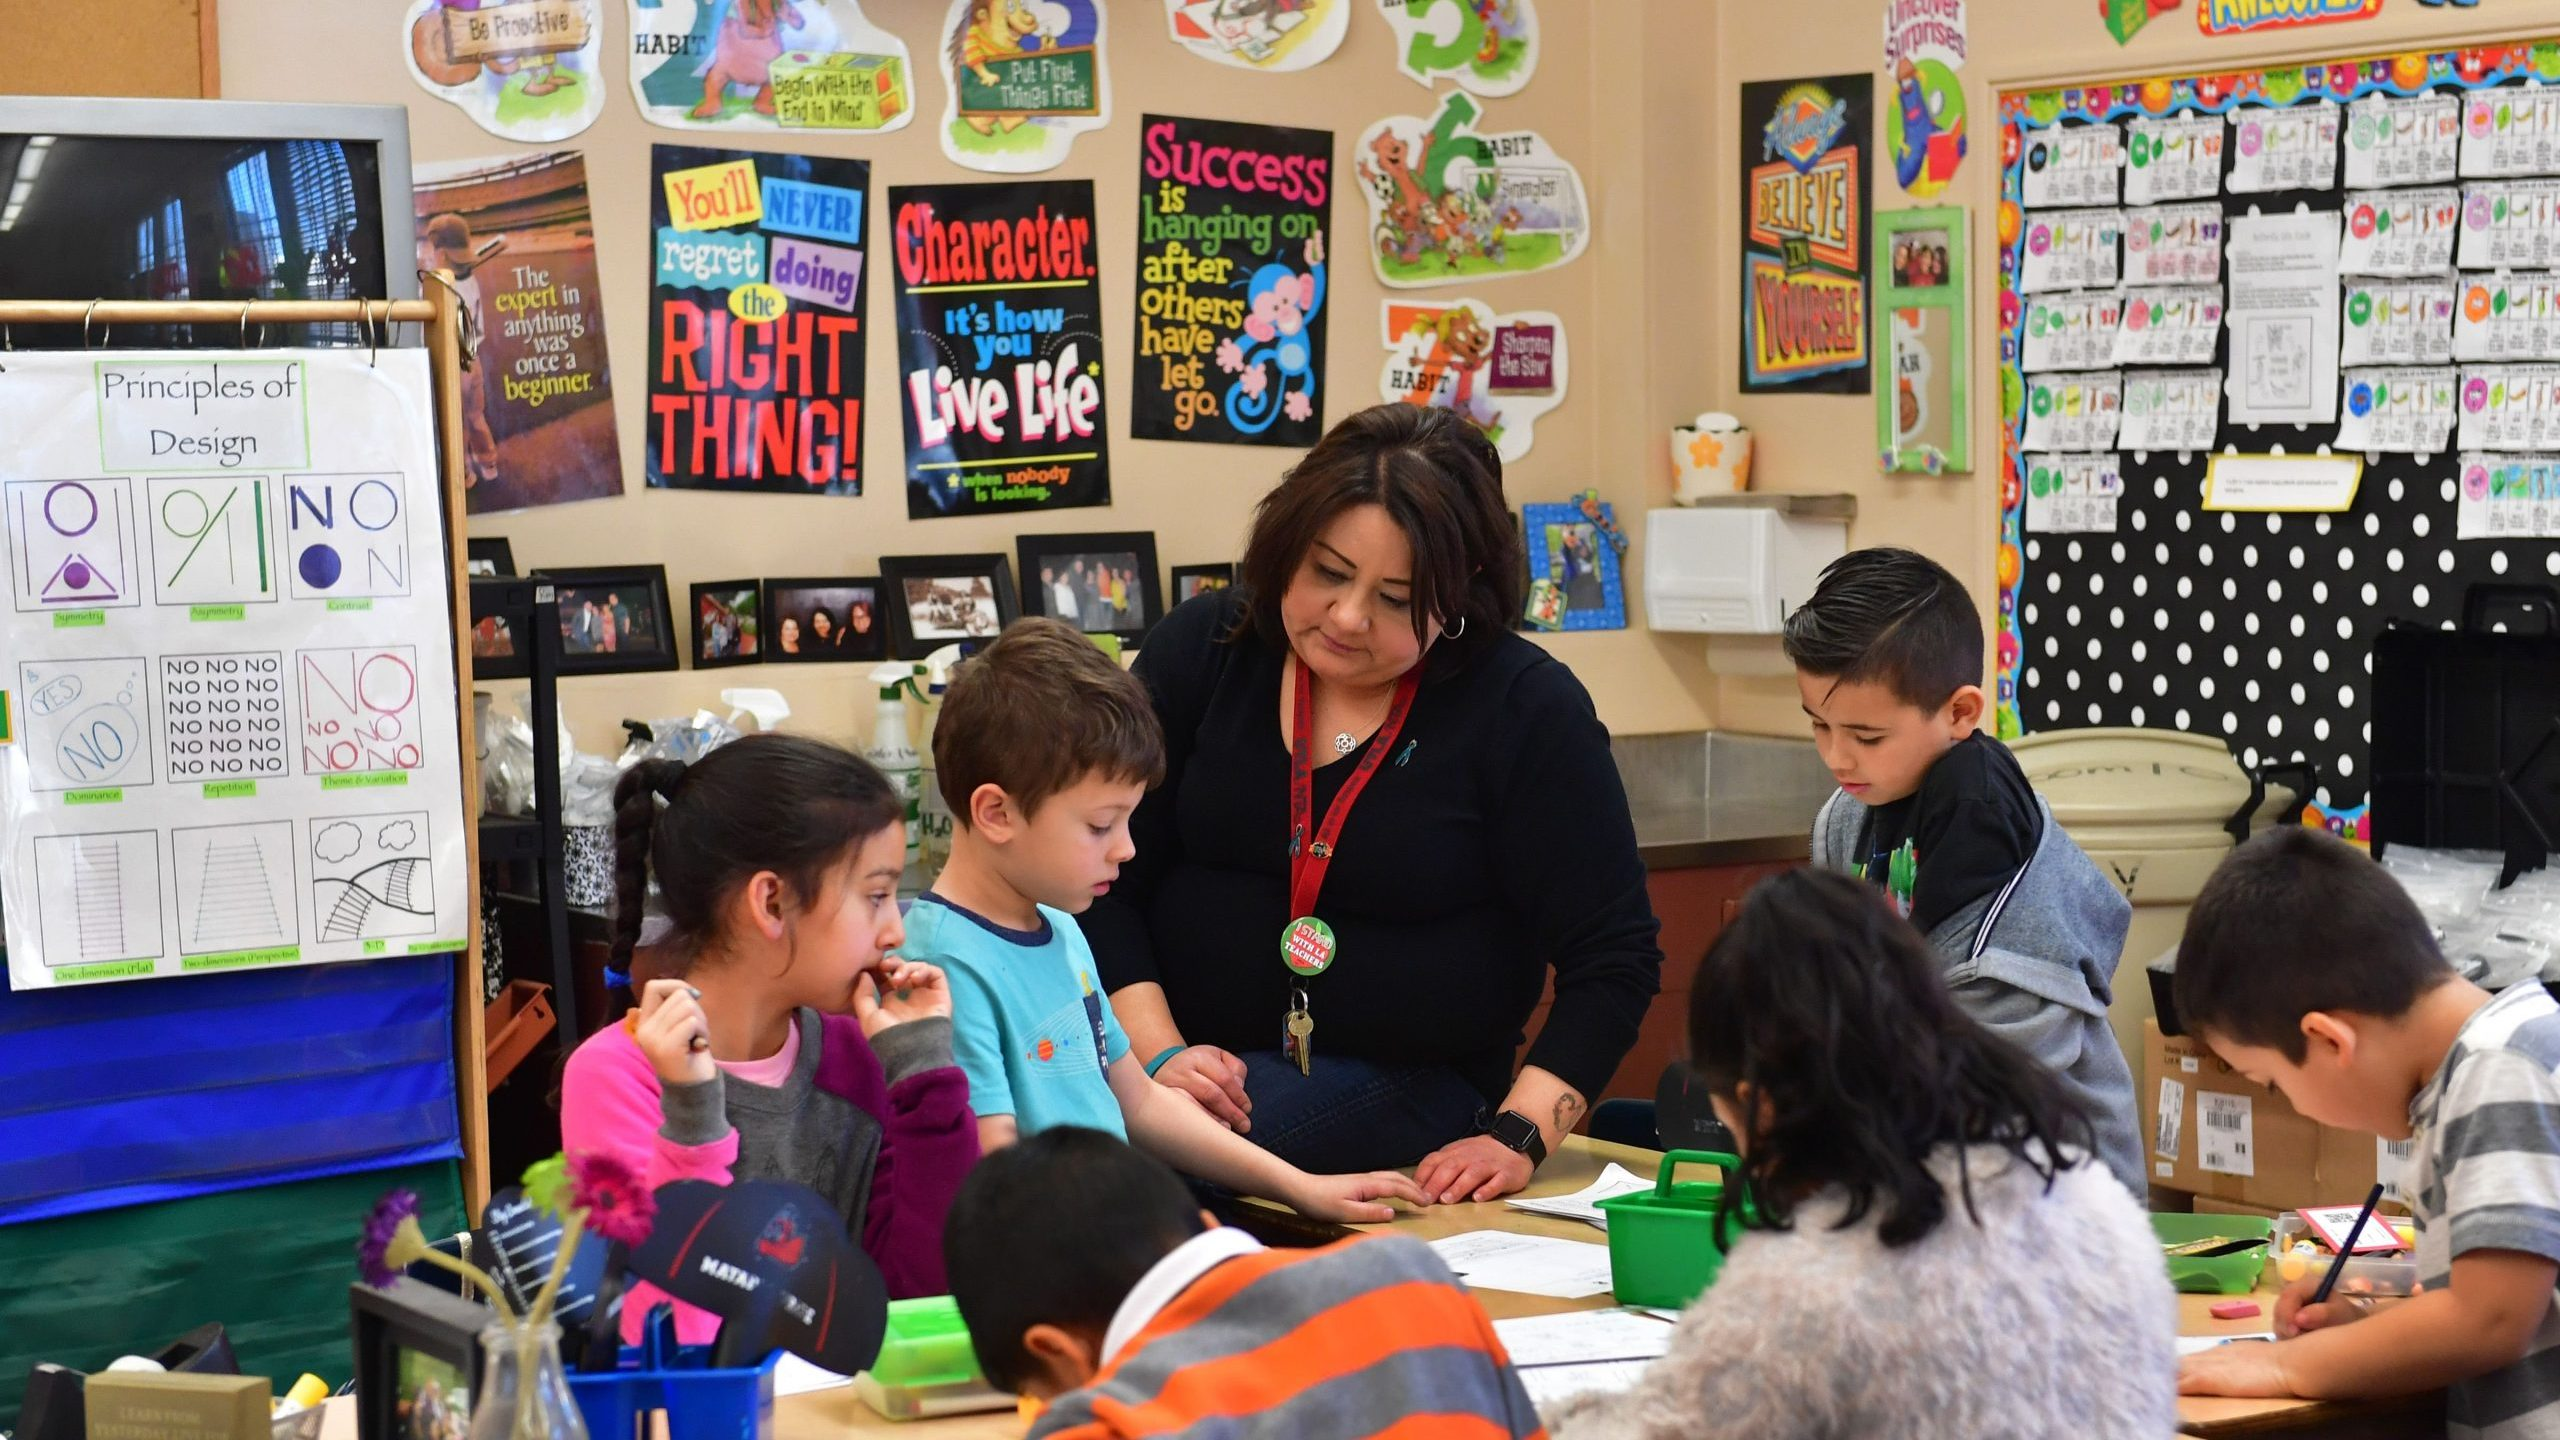 A Telfair Elementary School first grade teacher works with her students on Feb. 8, 2019, in Pacoima, California. (Credit: Frederic J. Brown/AFP via Getty Images)